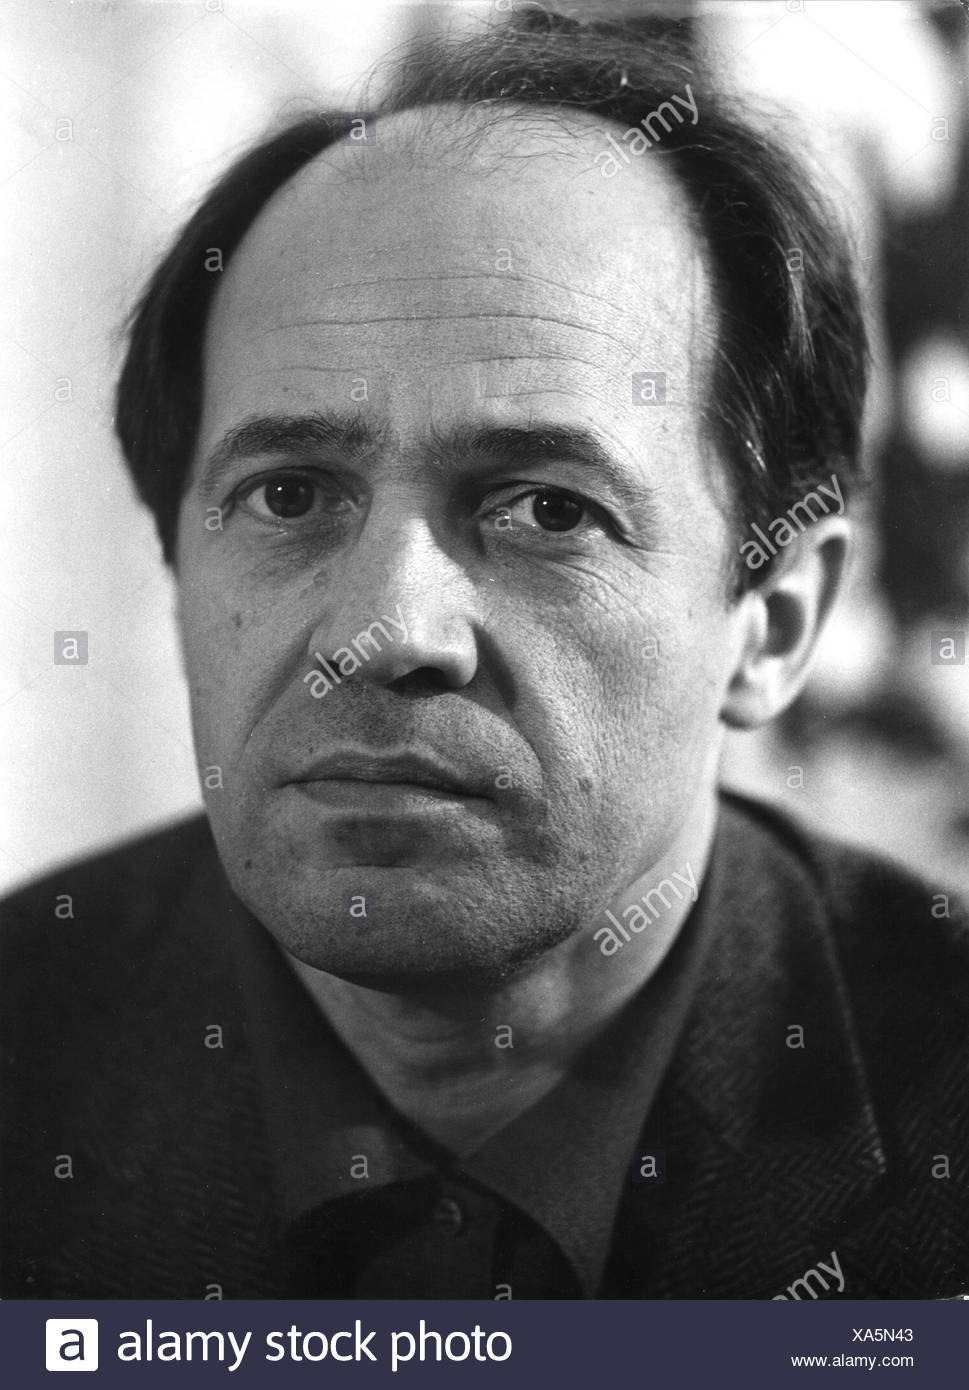 Boulez, Pierre, 25.3.1925 - 5.1.2016, French composer and conductor, since 1969, principal conductor of the New York philharmonic, portrait, , Additional-Rights-Clearances-NA - Stock Image